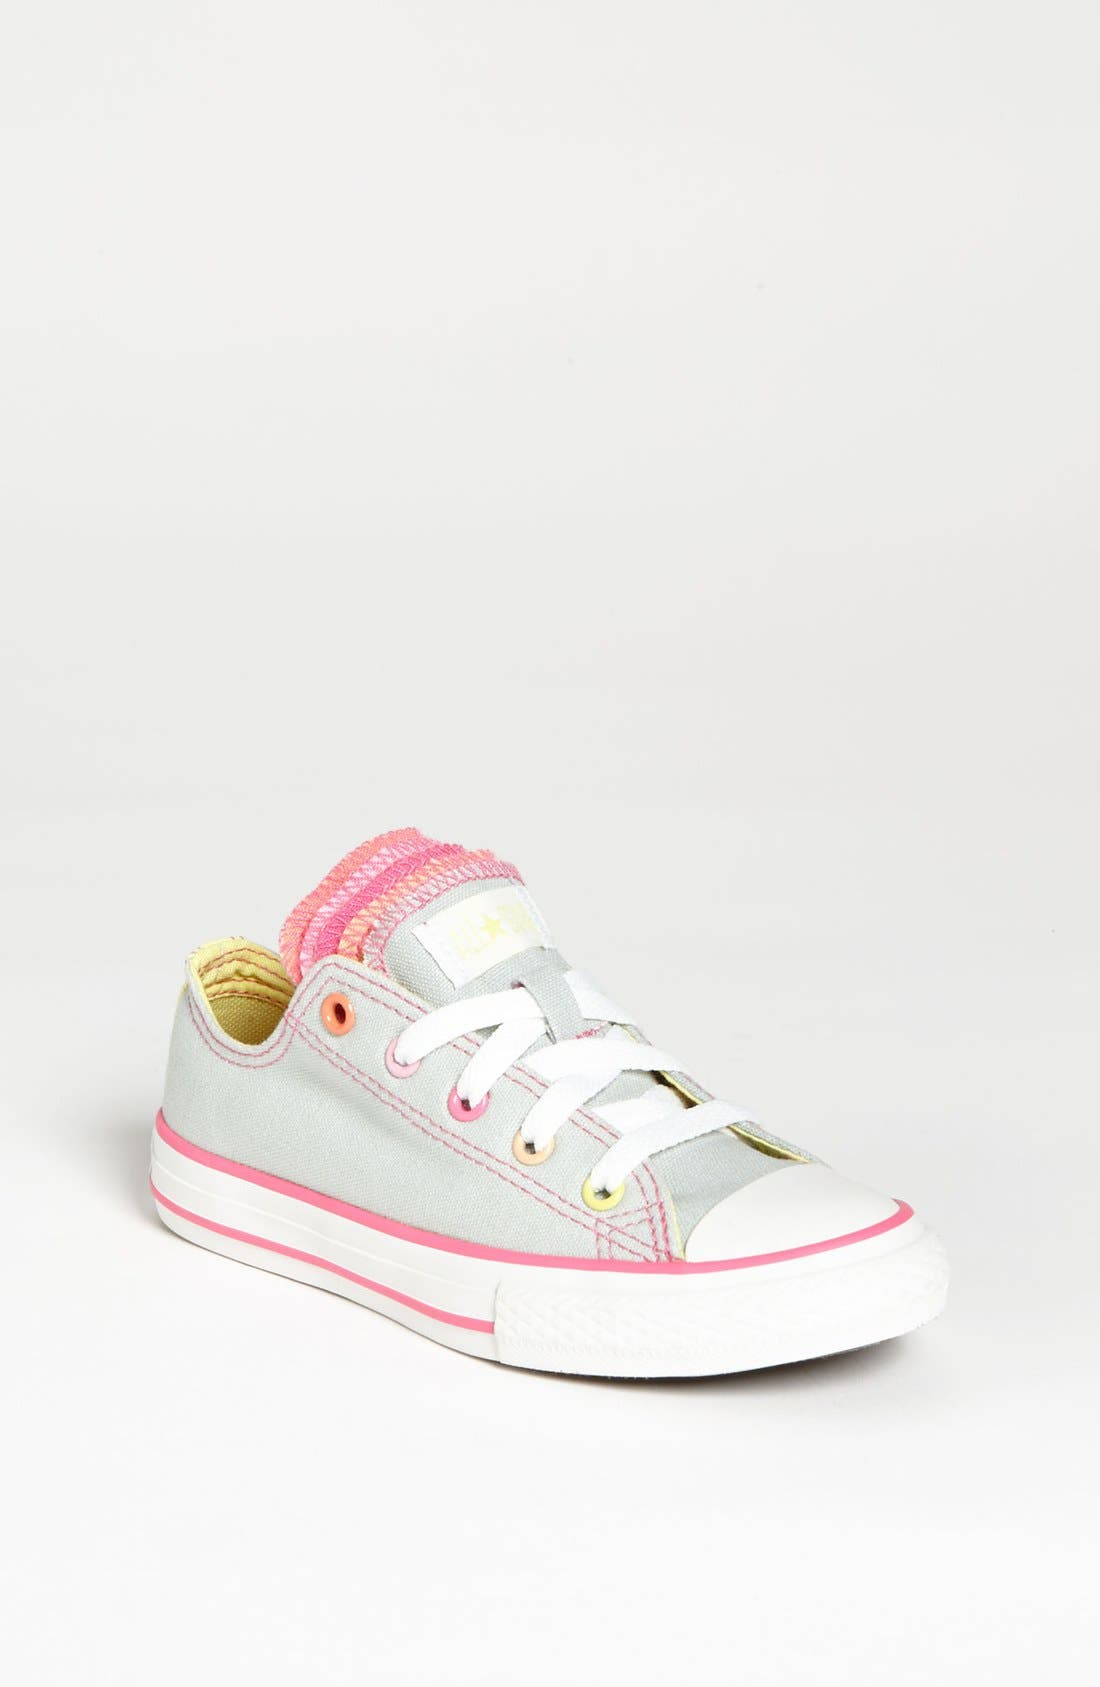 Alternate Image 1 Selected - Converse All Star® Multi-Tongue Sneaker (Toddler, Little Kid & Big Kid)